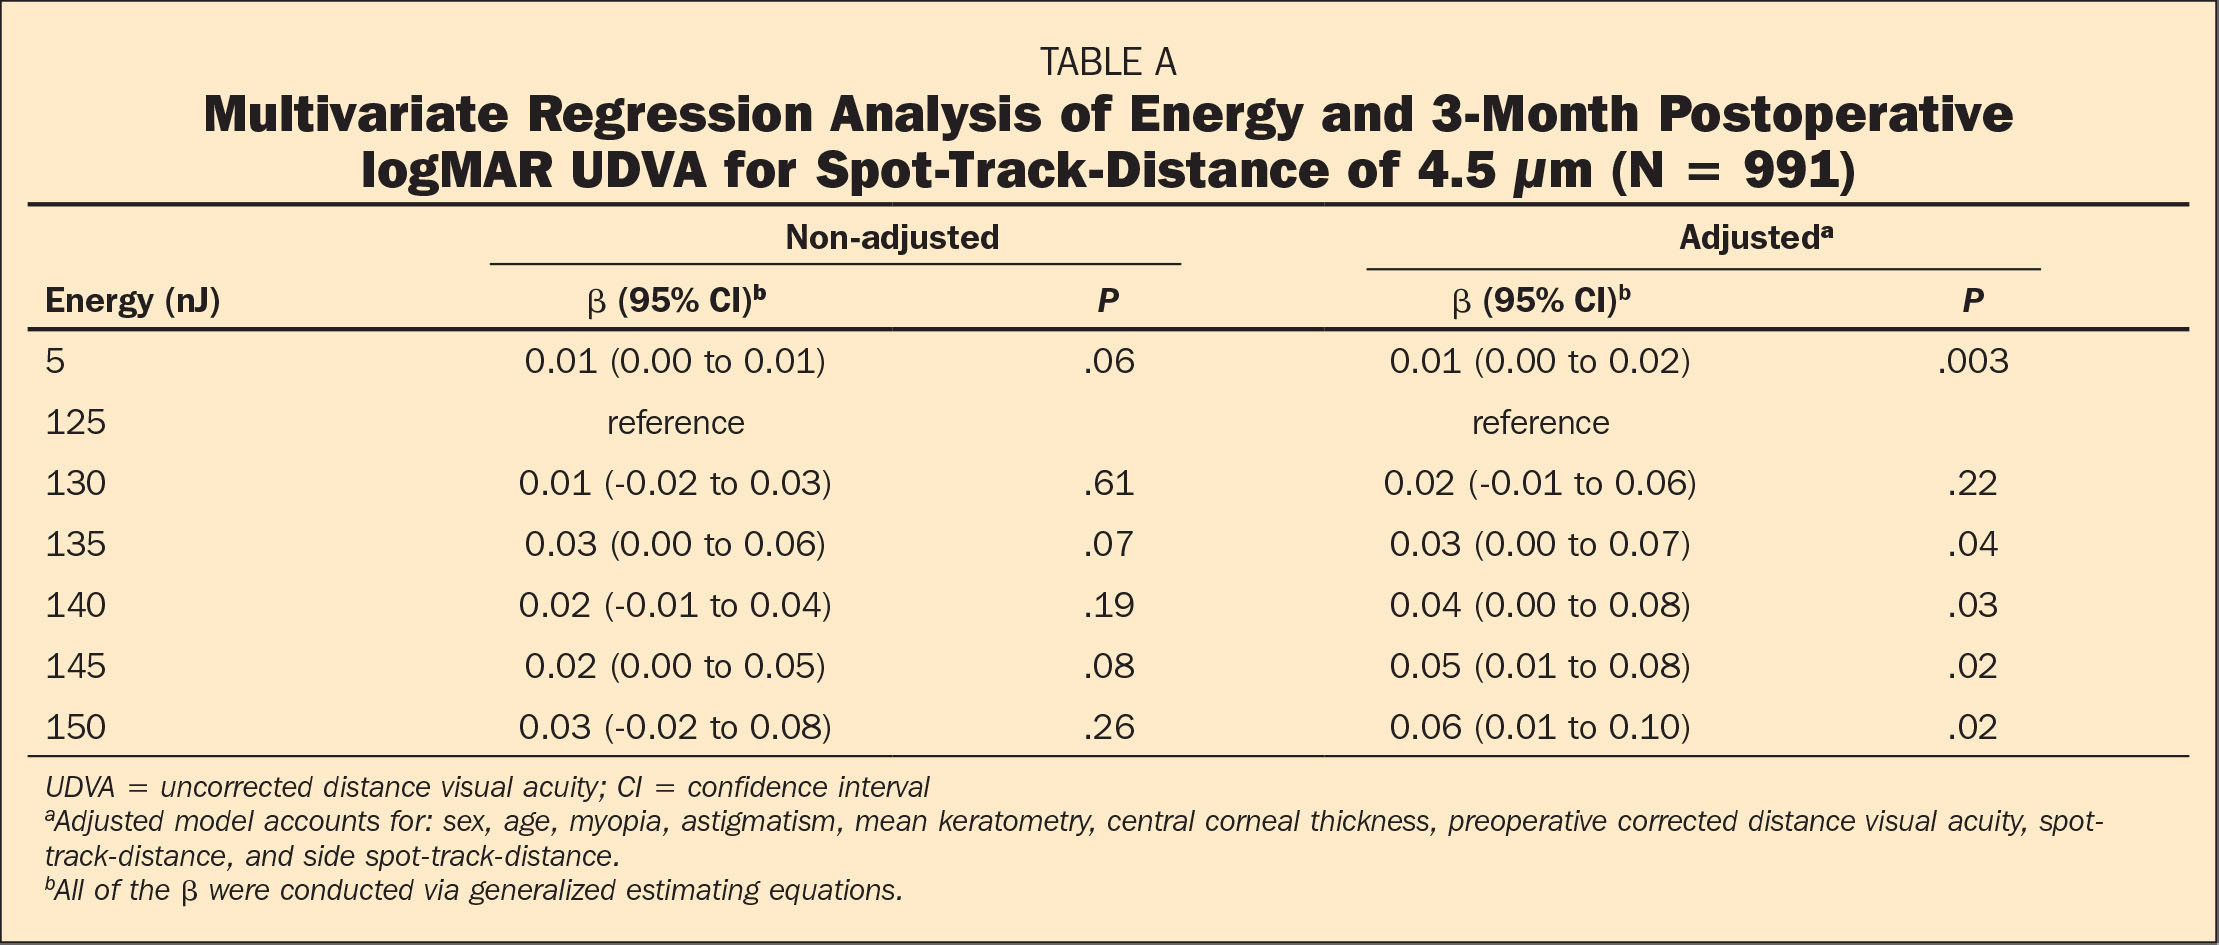 Multivariate Regression Analysis of Energy and 3-Month Postoperative logMAR UDVA for Spot-Track-Distance of 4.5 μm (N = 991)